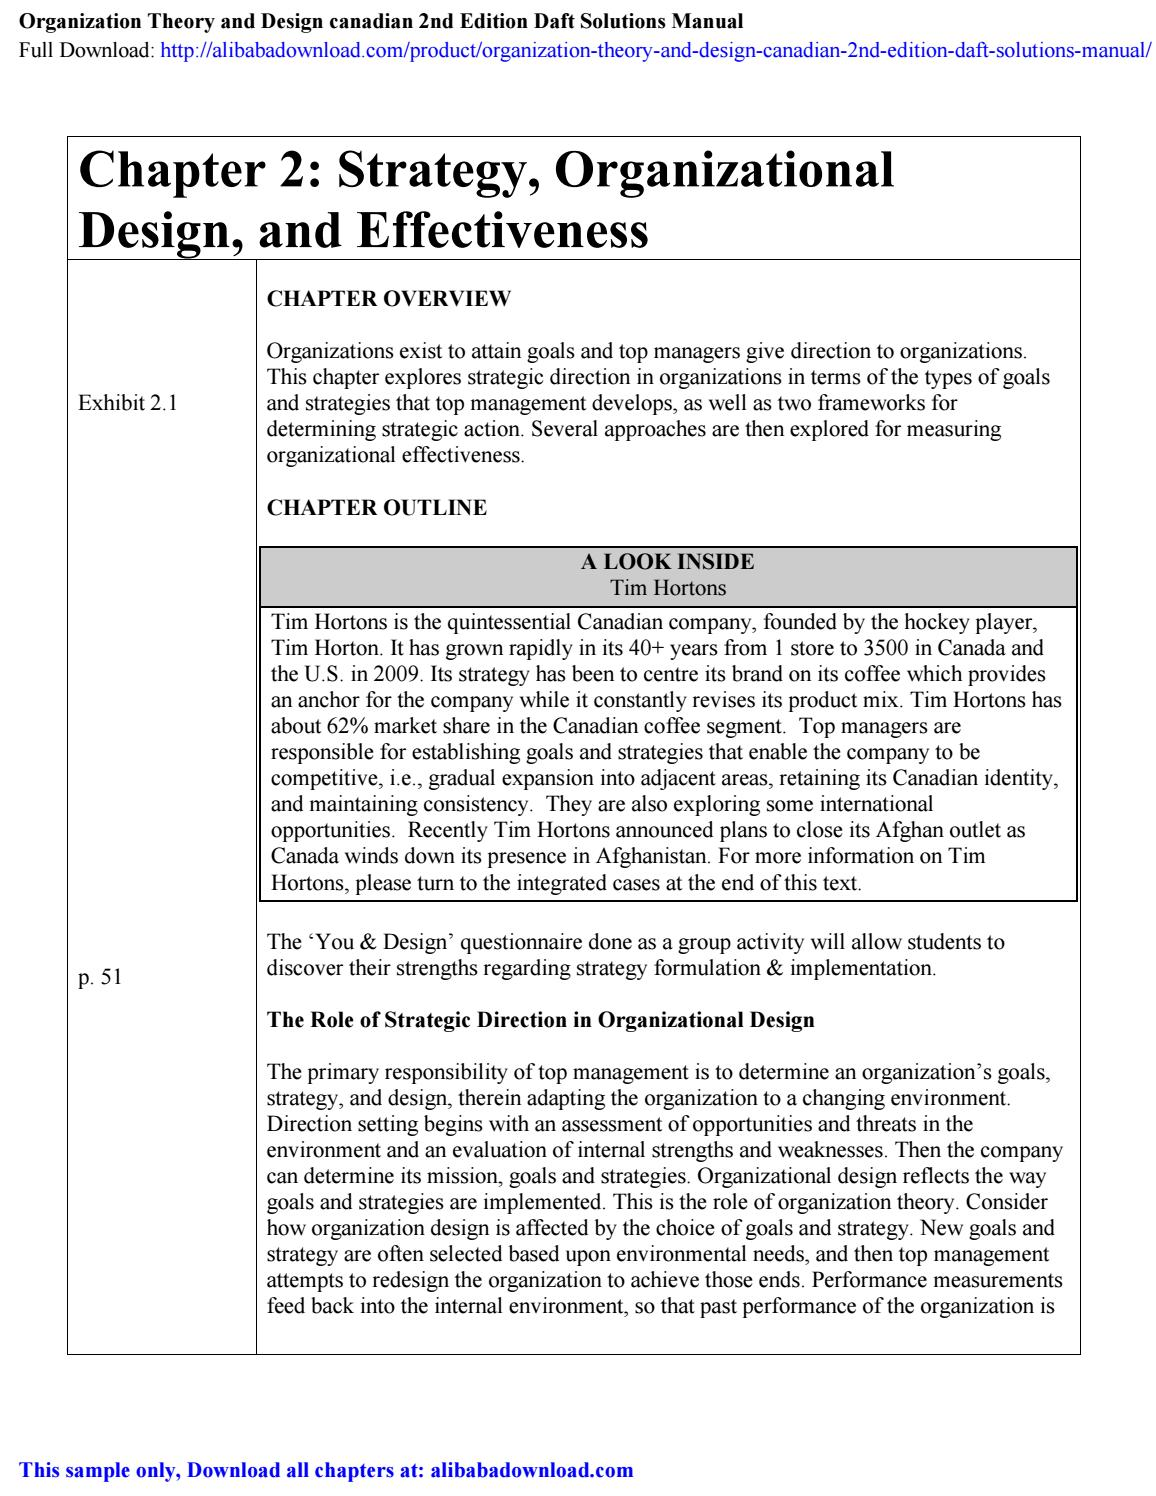 Organization Theory And Design Canadian 2nd Edition Daft Solutions Manual By Fischer Issuu